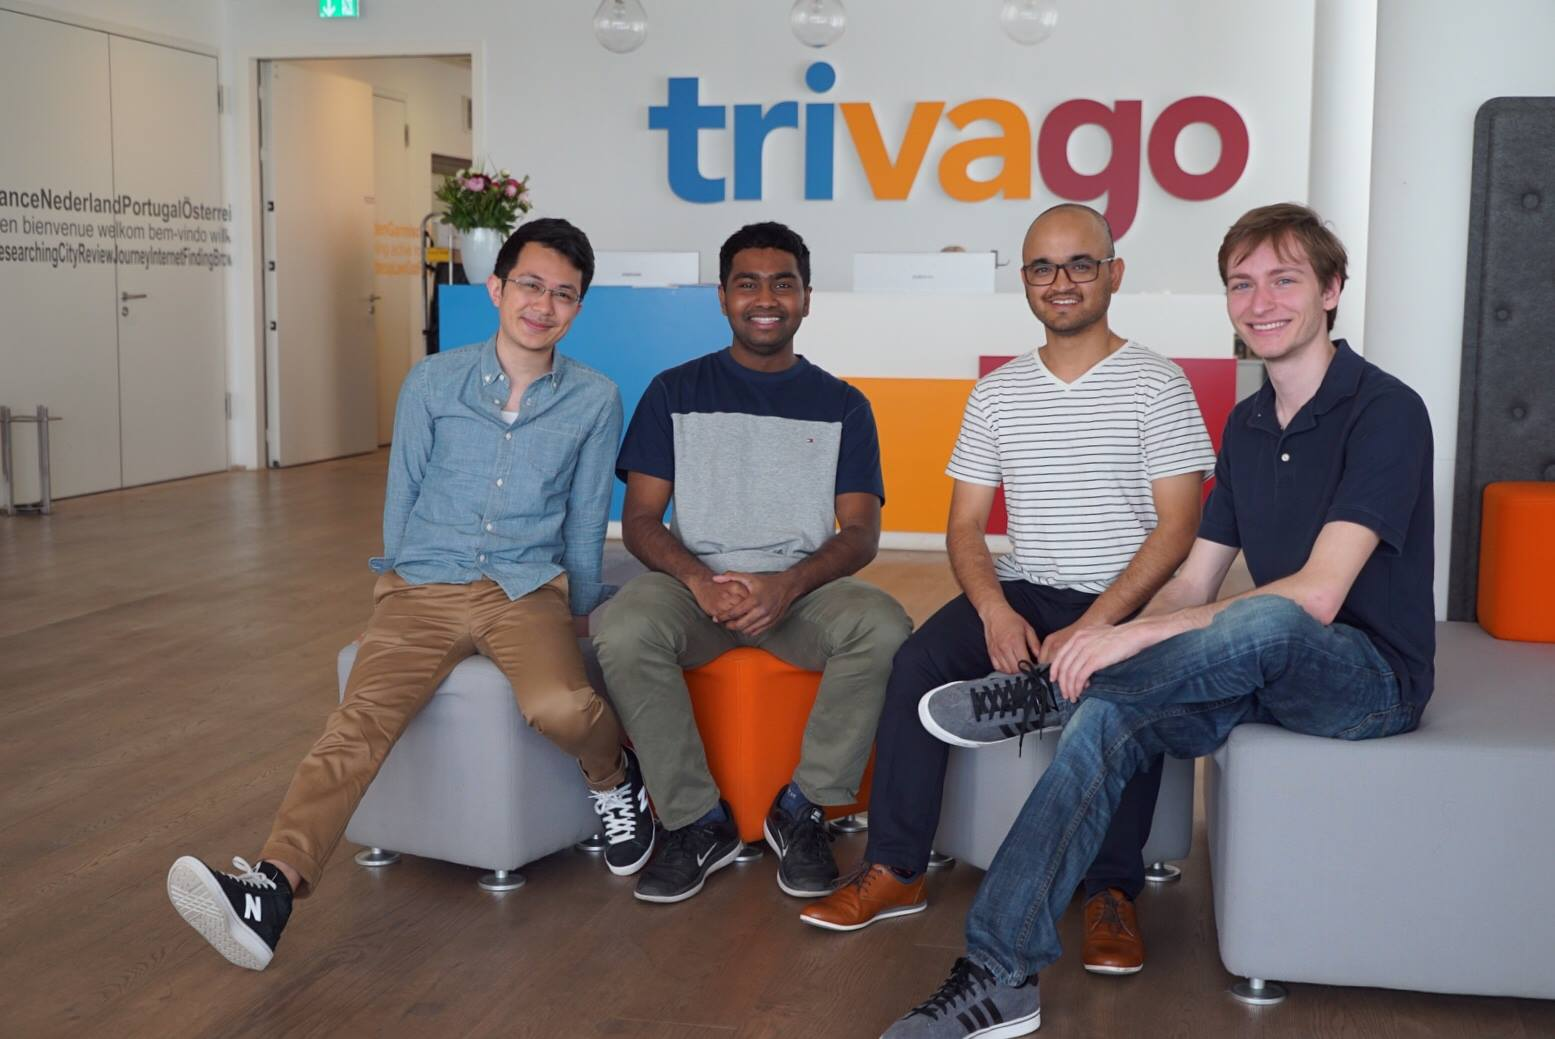 Read Interview with the Winners of trivago's New York Hackathon